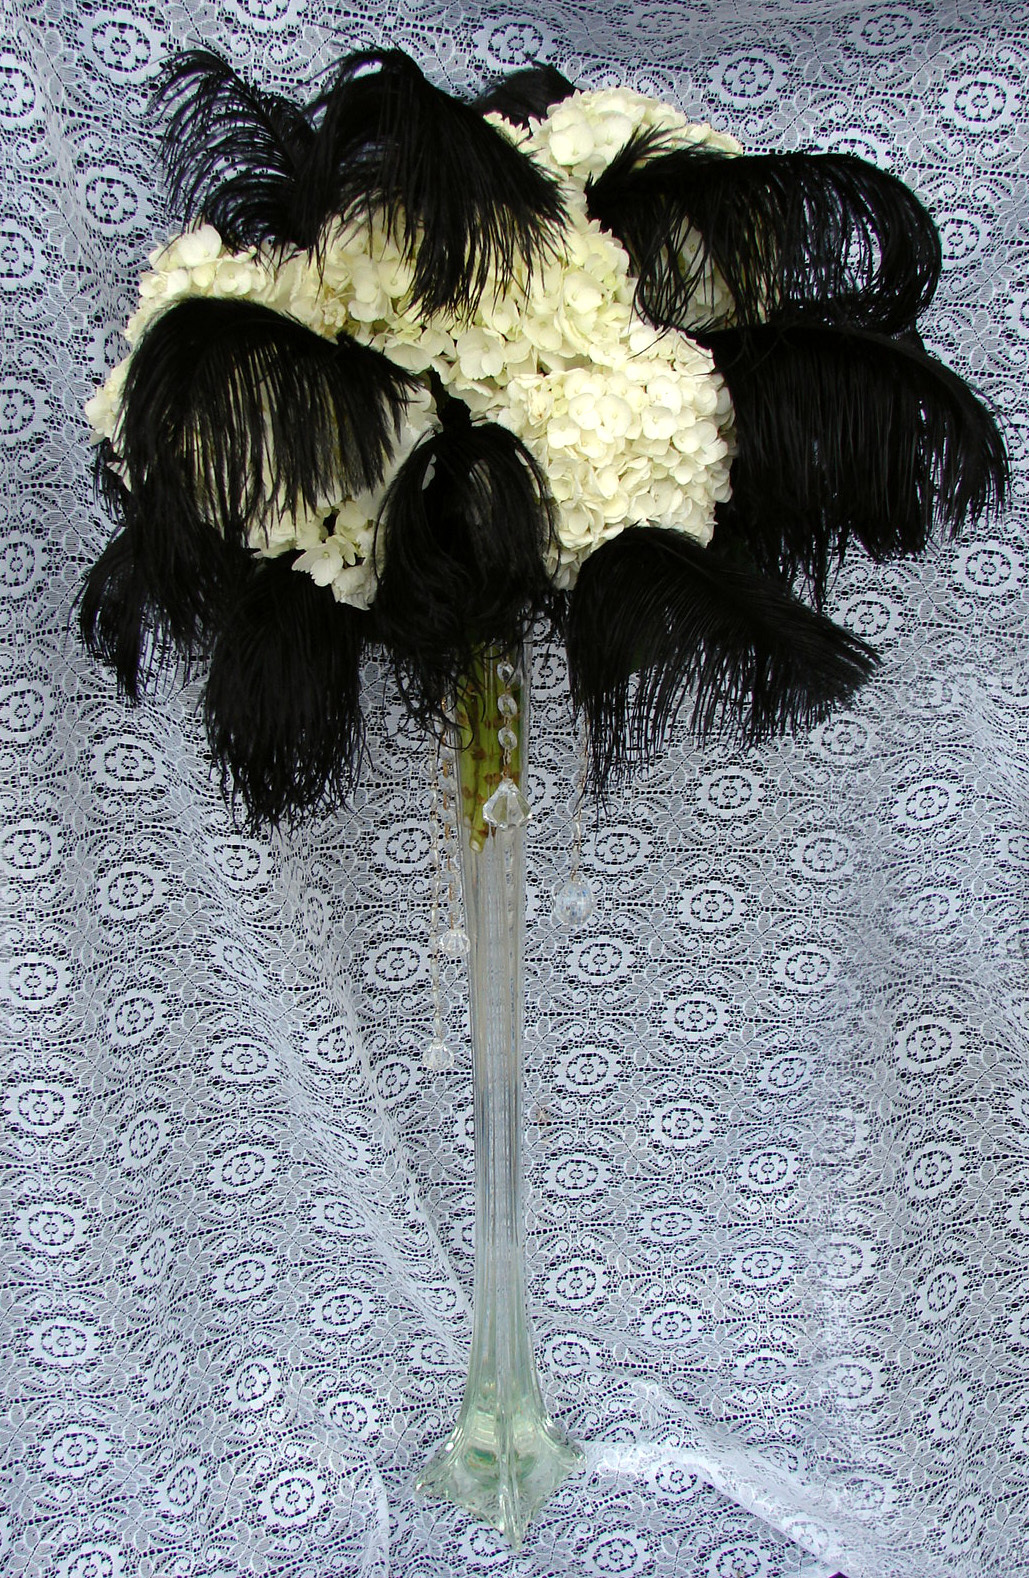 Beauty, Flowers & Decor, white, black, Feathers, Centerpieces, Flowers, Centerpiece, Tall, Hydrangea, Crystals, Gardenpartytogocom